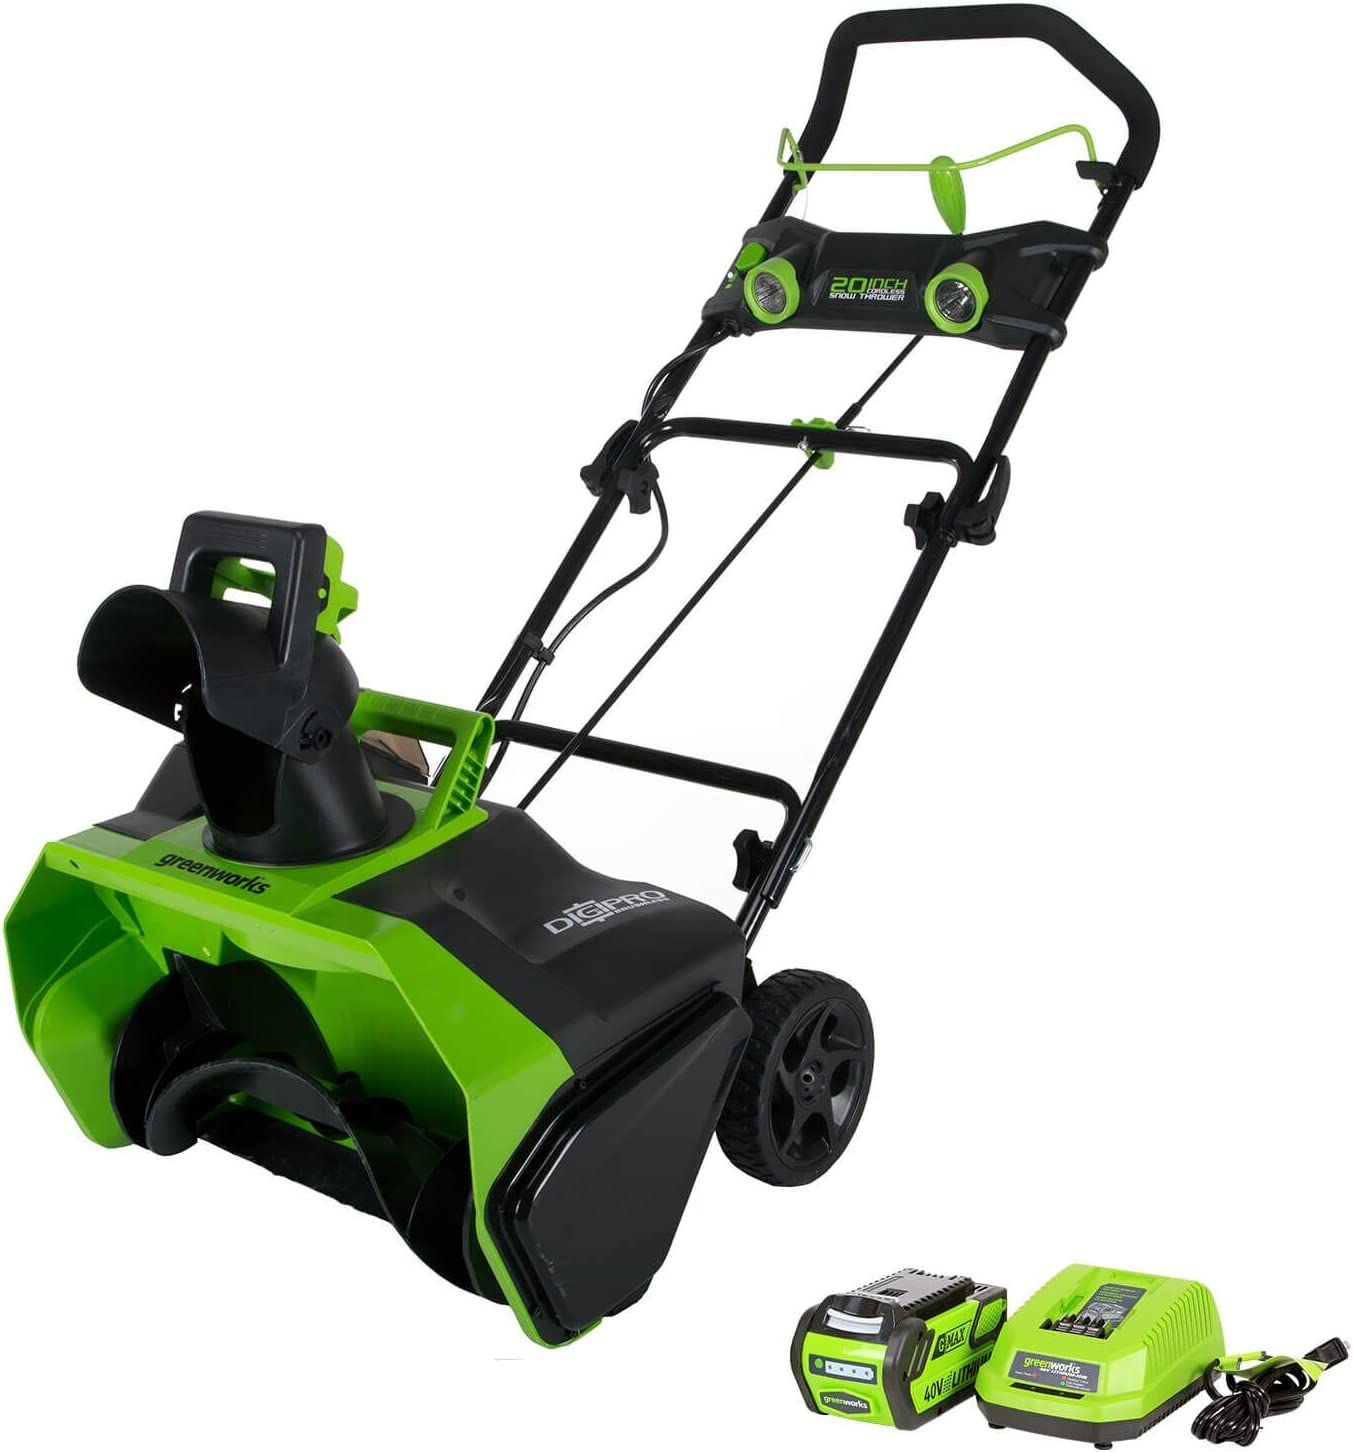 Greenworks 40V Cordless Snow Thrower, 4.0 AH Battery Included, 26272